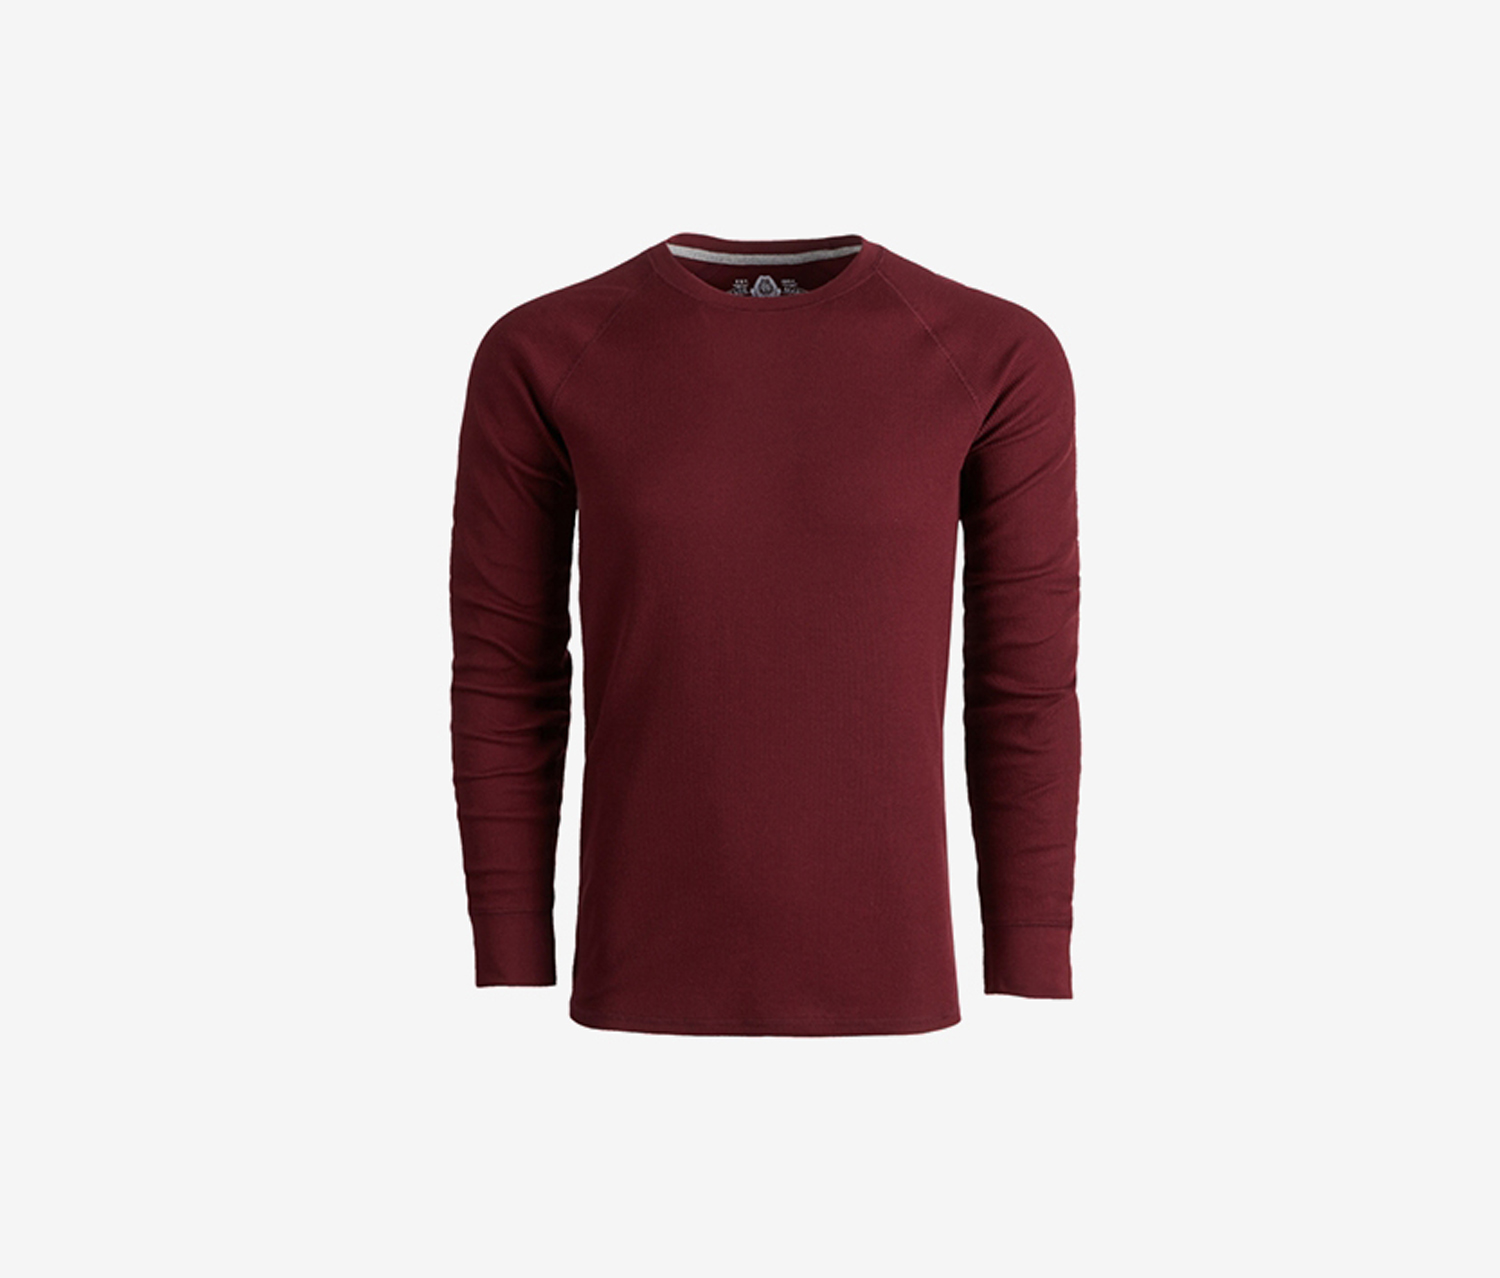 Men's Waffle Knit Long Sleeves Thermal Shirt, Dark Scarlet